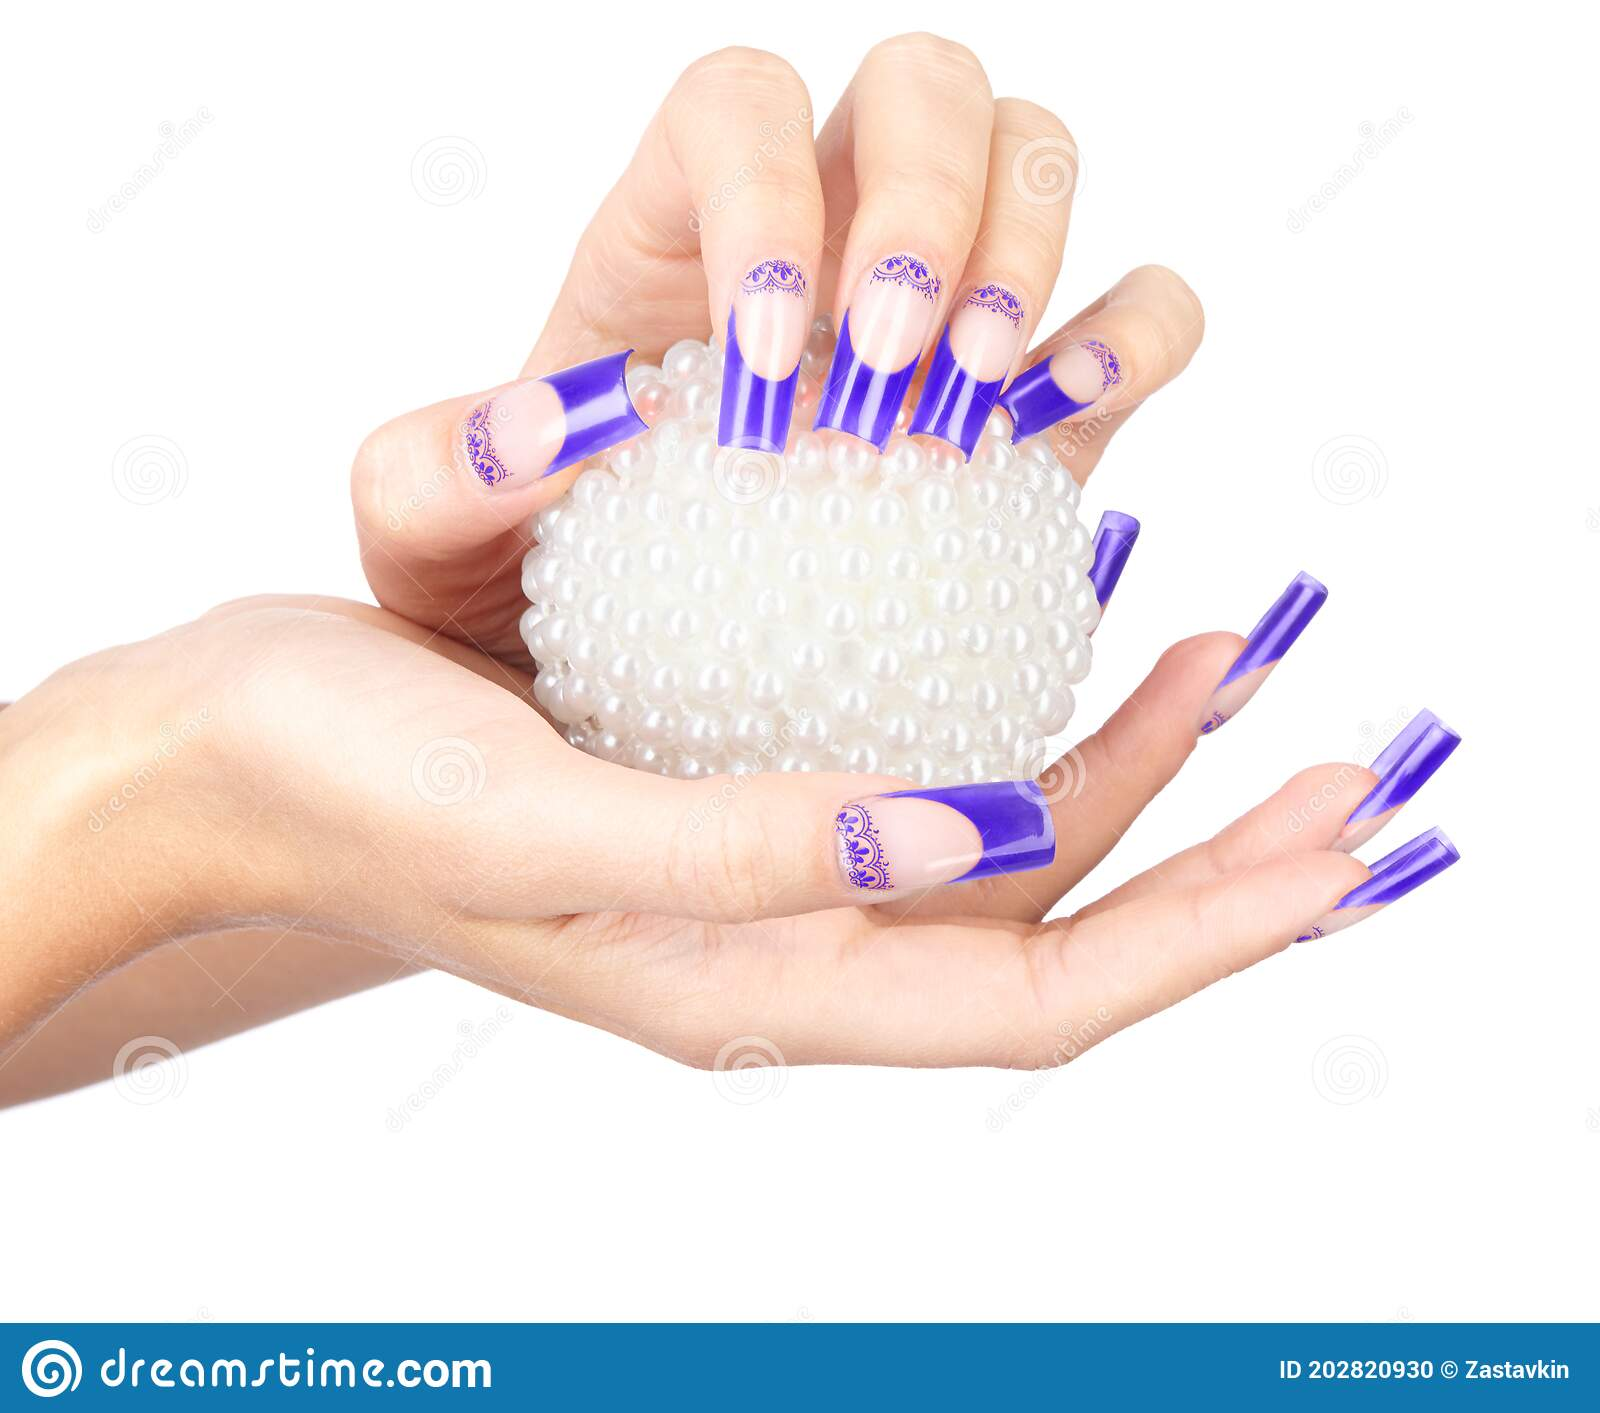 1 415 Blue Christmas Nails Photos Free Royalty Free Stock Photos From Dreamstime